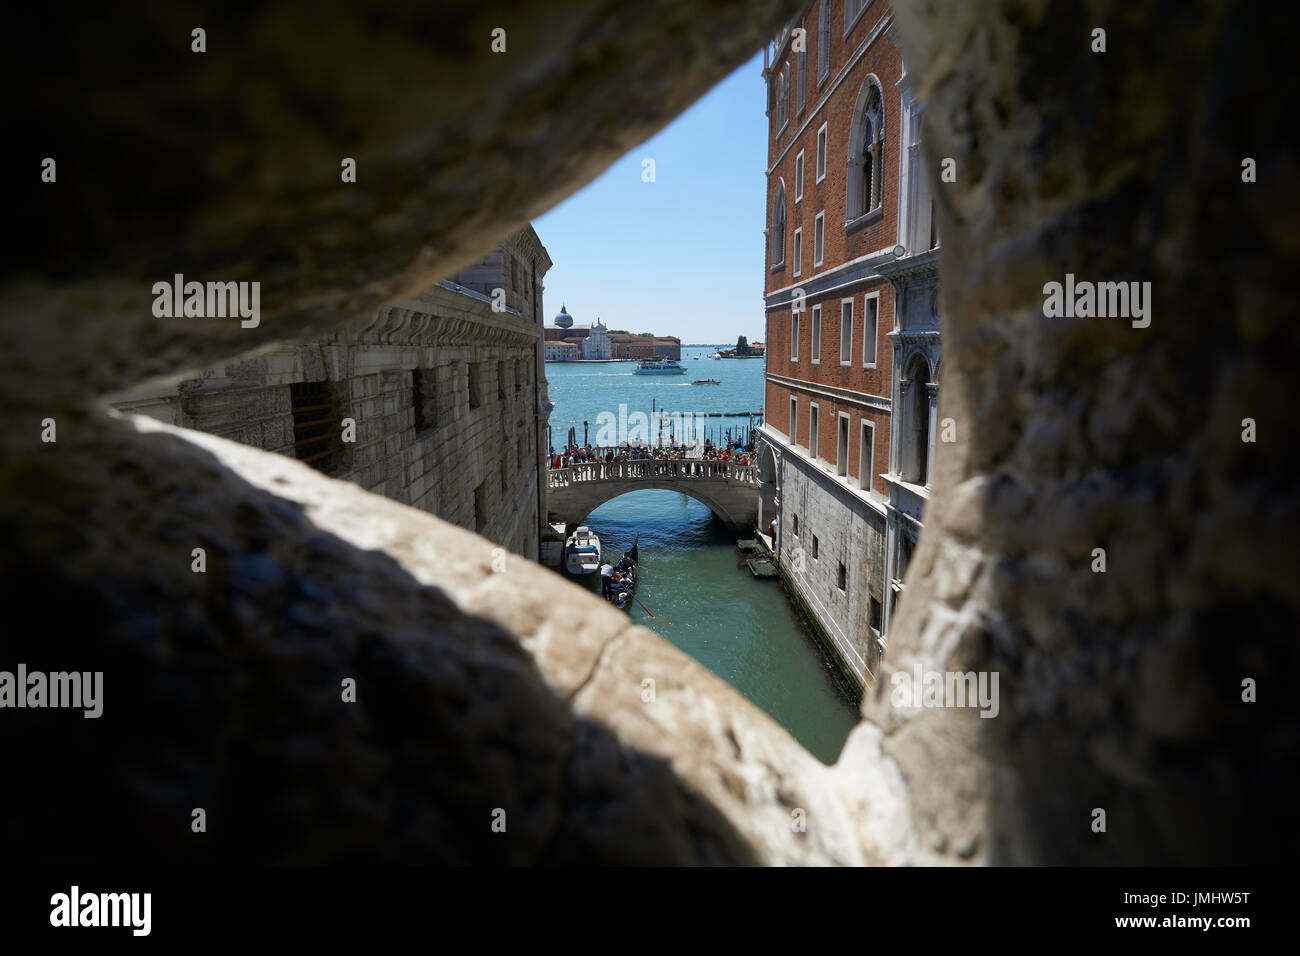 A prisoners view from the Bridge of Sighs. - Stock Image